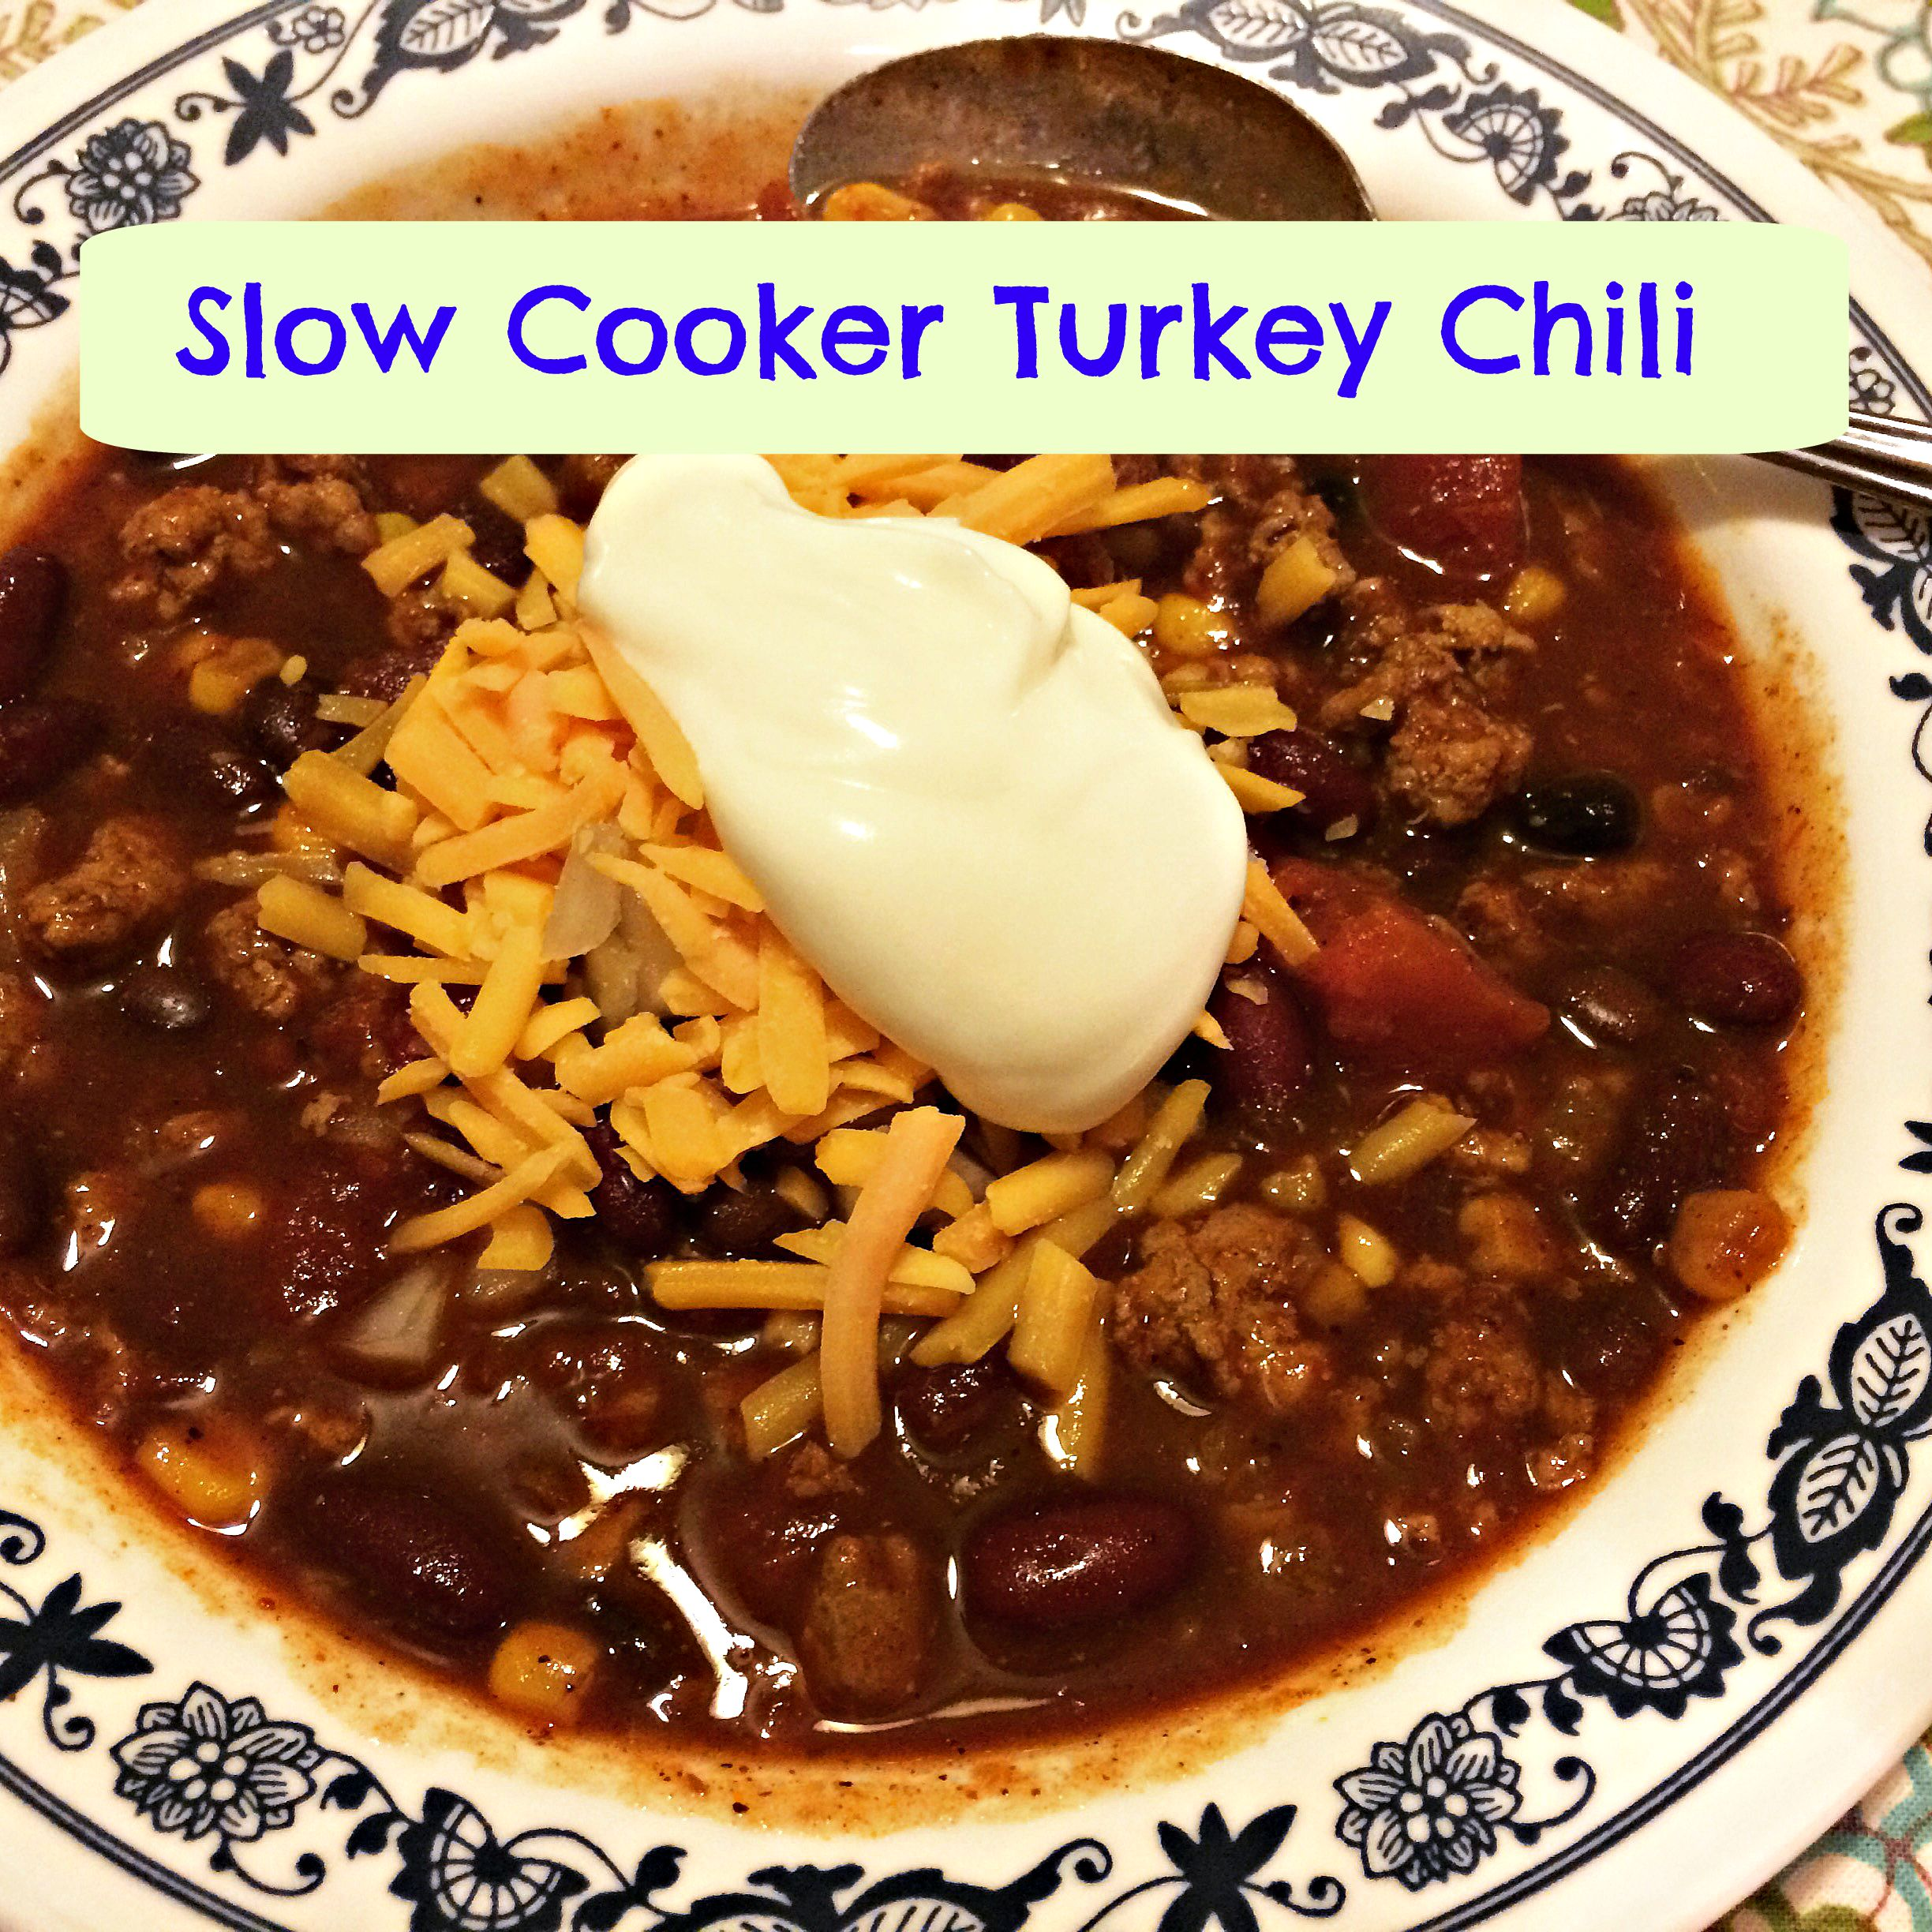 ... turkey chili makes an appearance every fall and winter and is the